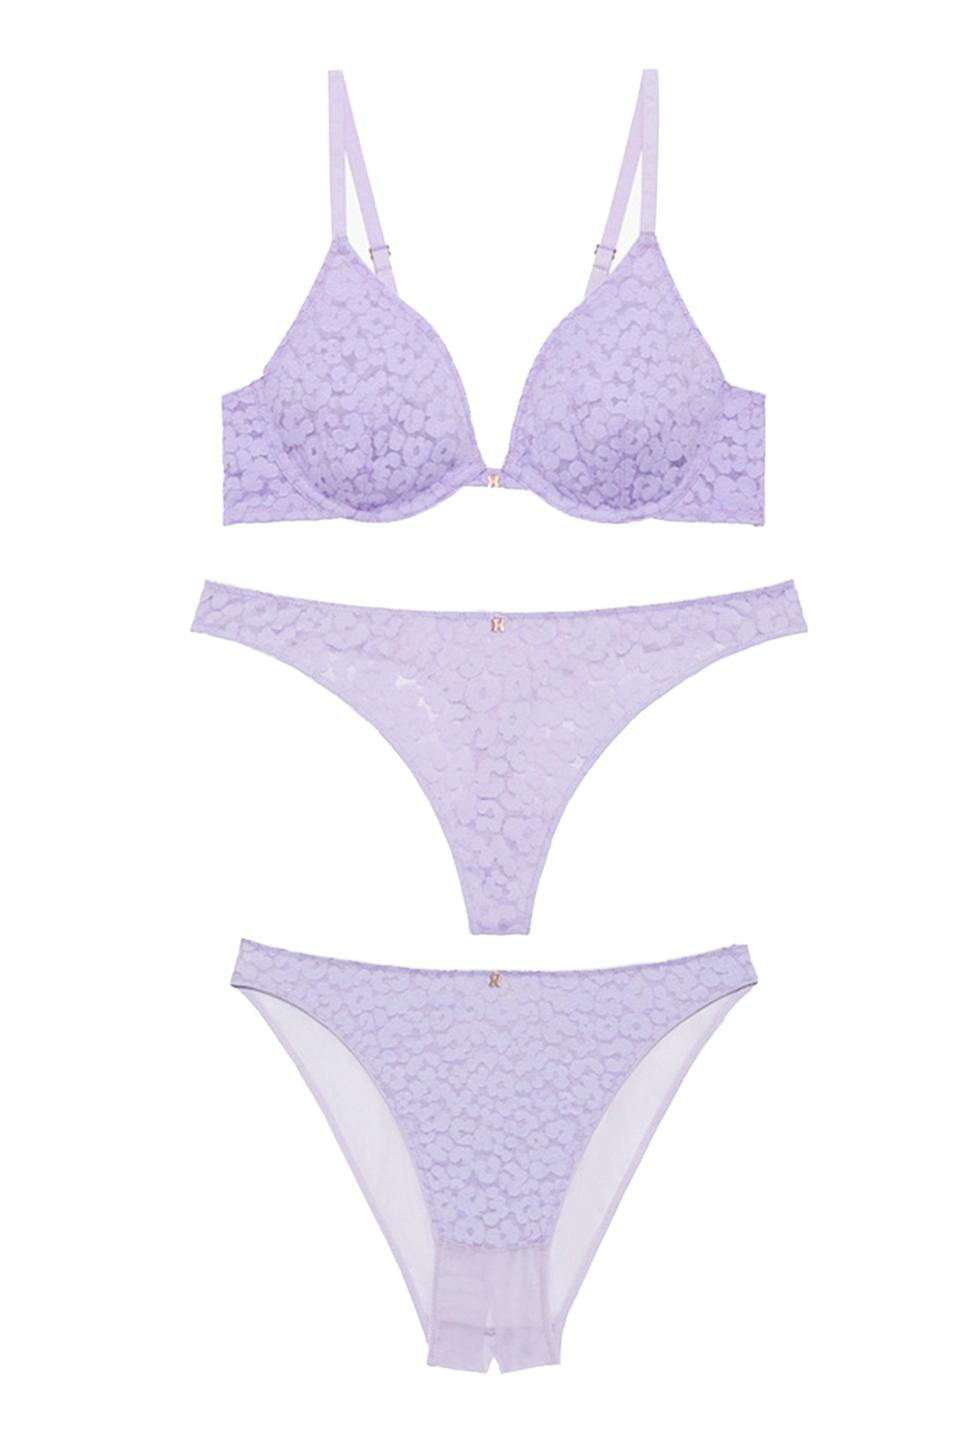 """<p>savagex.com</p><p><strong>$84.85</strong></p><p><a href=""""https://go.redirectingat.com?id=74968X1596630&url=https%3A%2F%2Fwww.savagex.com%2Fshop%2Fsets%2Fwild-at-heart-3-piece-set-sxfss200804-10639054&sref=https%3A%2F%2Fwww.redbookmag.com%2Fbeauty%2Fg35337778%2Fblack-owned-subscription-boxes%2F"""" rel=""""nofollow noopener"""" target=""""_blank"""" data-ylk=""""slk:Shop Now"""" class=""""link rapid-noclick-resp"""">Shop Now</a></p><p>If you don't already know about the Fenty empire you're not living your best life. Rihanna blessed the multitudes when she extended her empire to include lingerie through <a href=""""https://www.elle.com/fashion/shopping/a35194326/savage-x-fenty-valentines-day-drop/"""" rel=""""nofollow noopener"""" target=""""_blank"""" data-ylk=""""slk:Savage X Fenty."""" class=""""link rapid-noclick-resp"""">Savage X Fenty.</a> For true fans and lingerie enthusiasts, you can become a VIP member, receiving a special selection from the brand curated by Rihanna herself every month.</p>"""